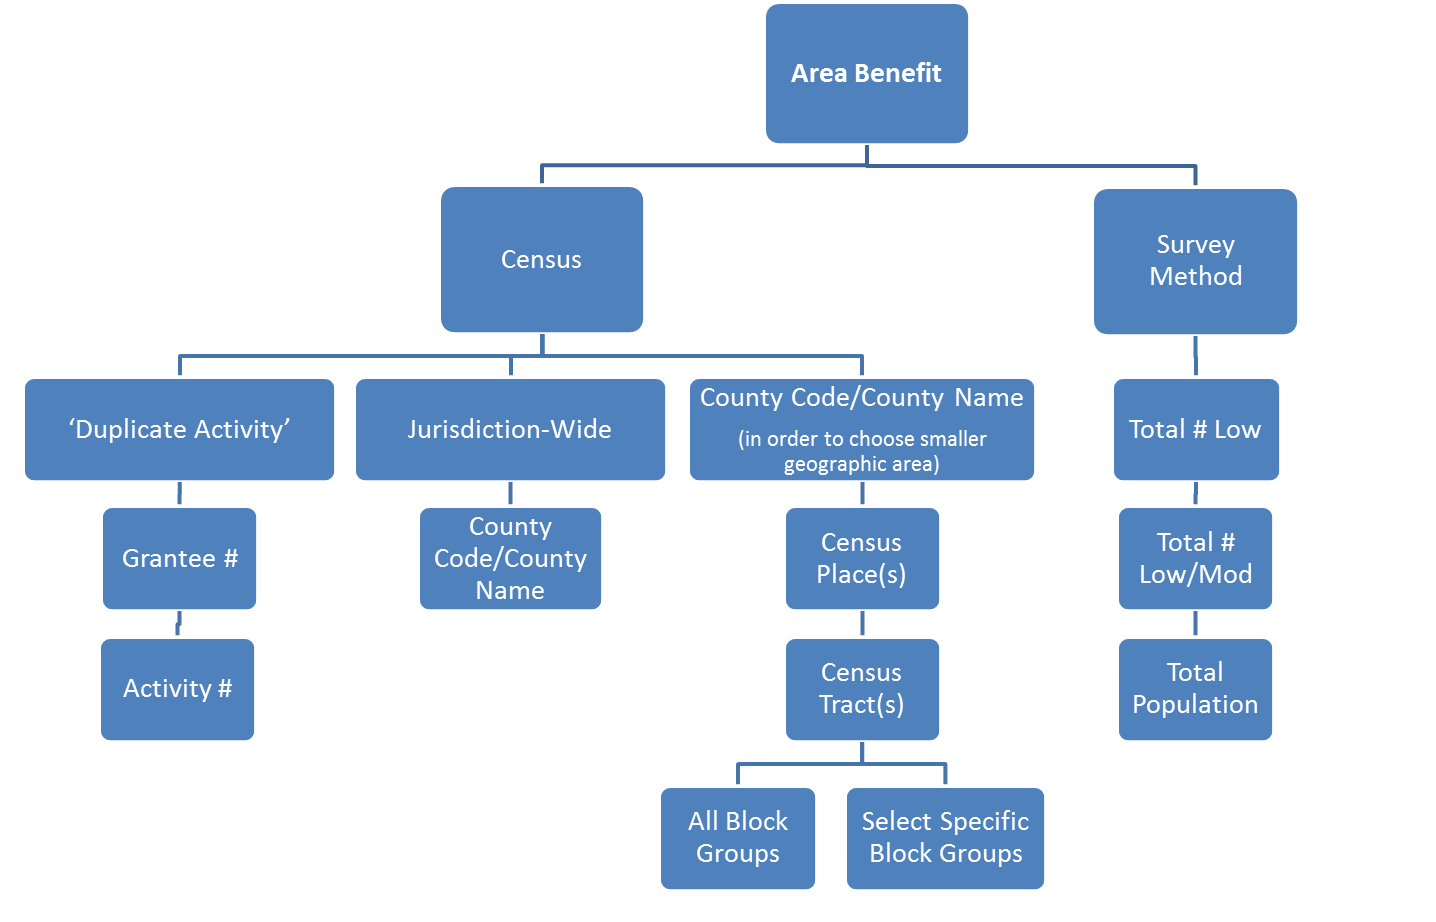 Workflow for the Two Area Benefit Options